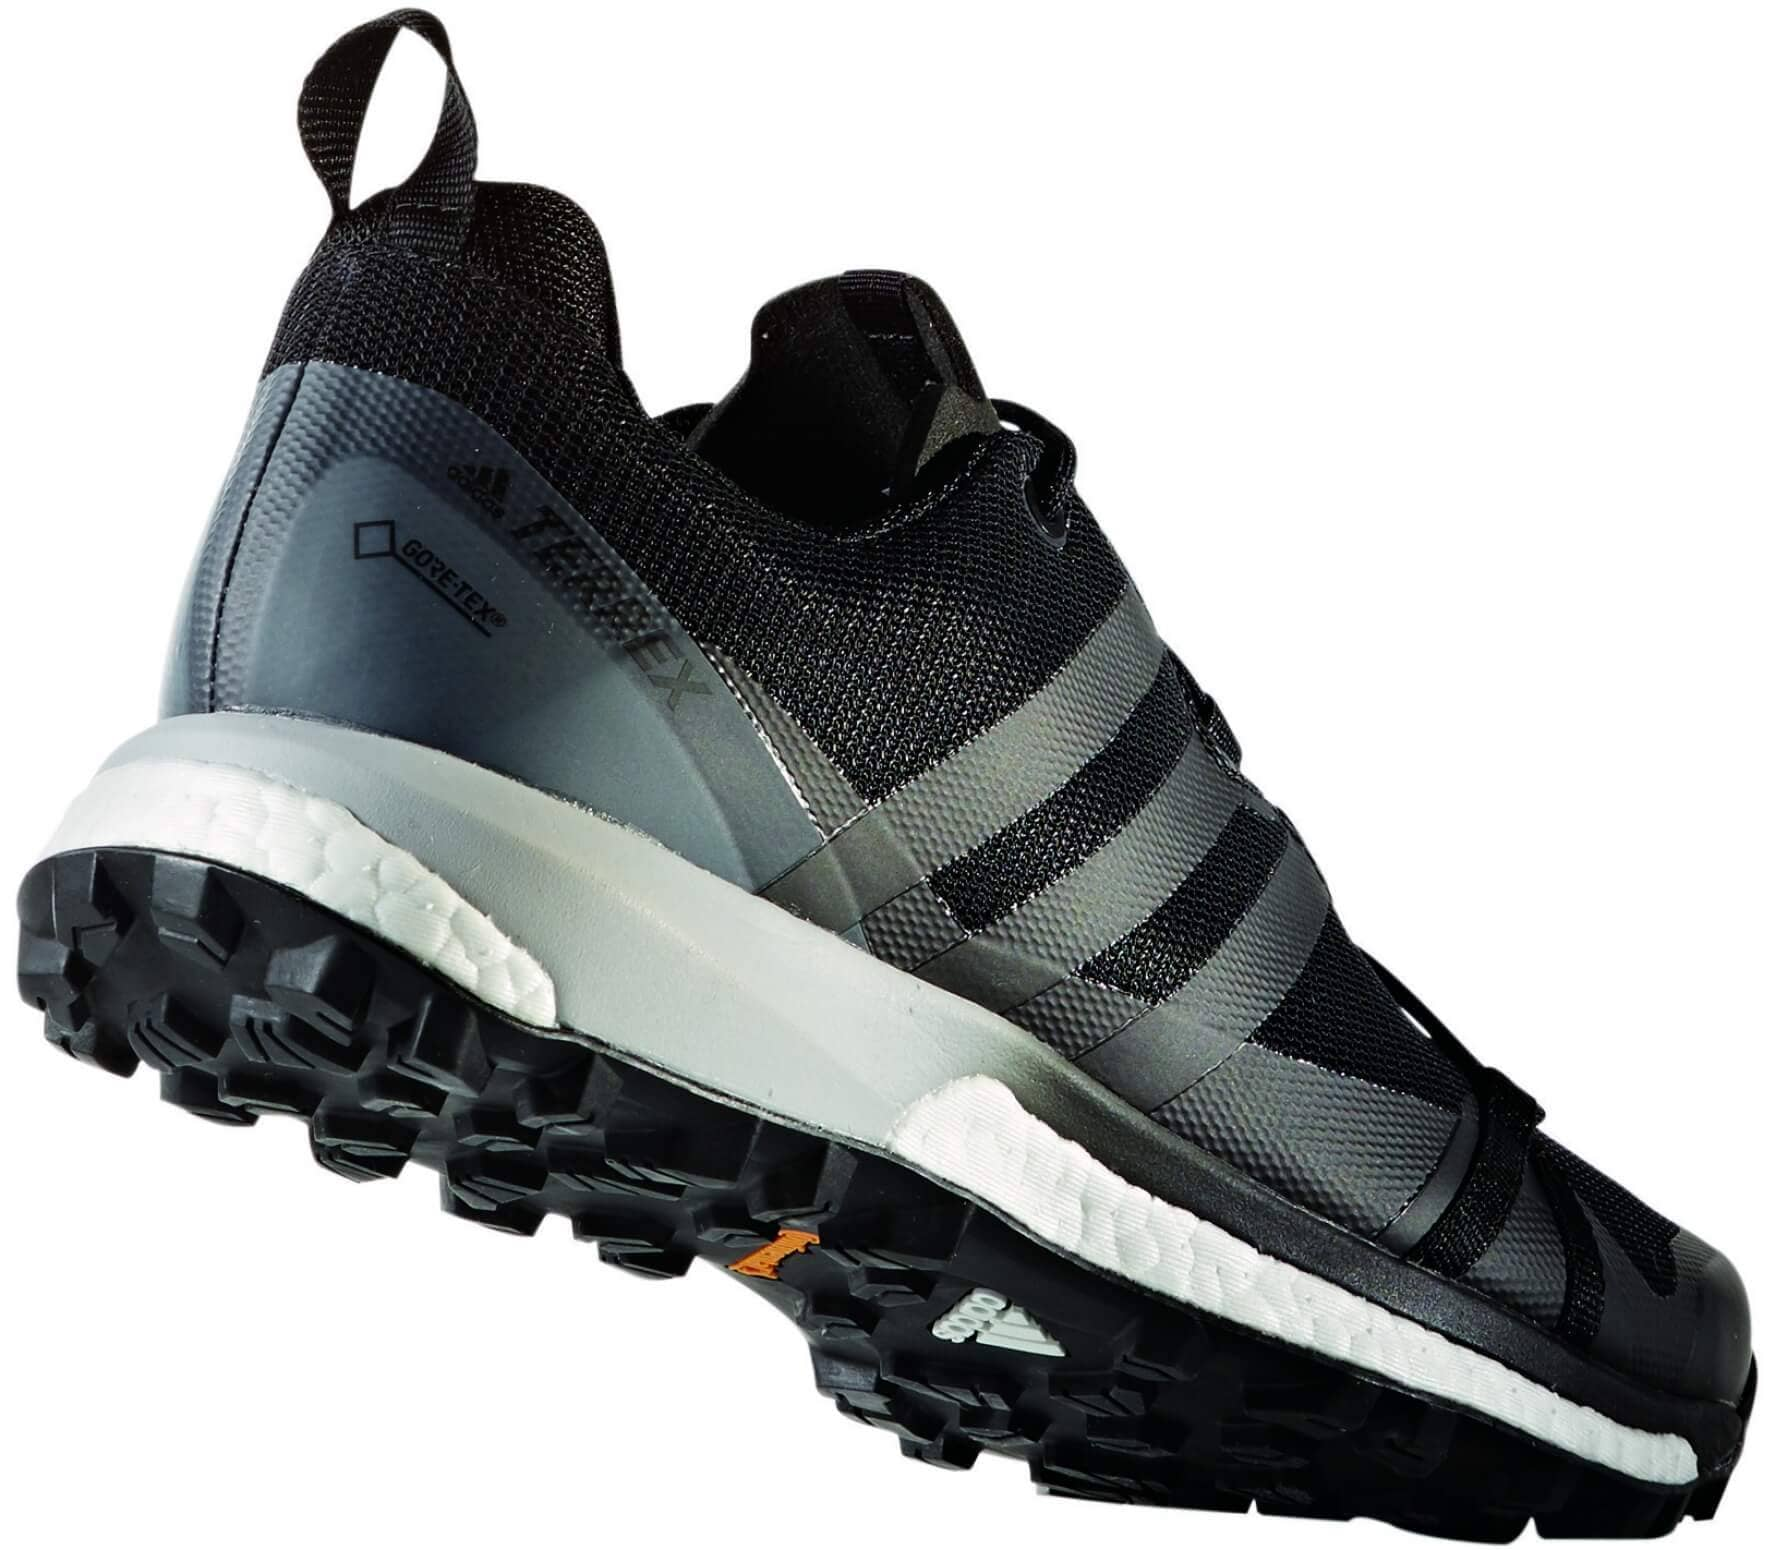 premium selection 34d8d eb921 Adidas - Terrex Agravic GTX men s Mountain running shoes (black grey)